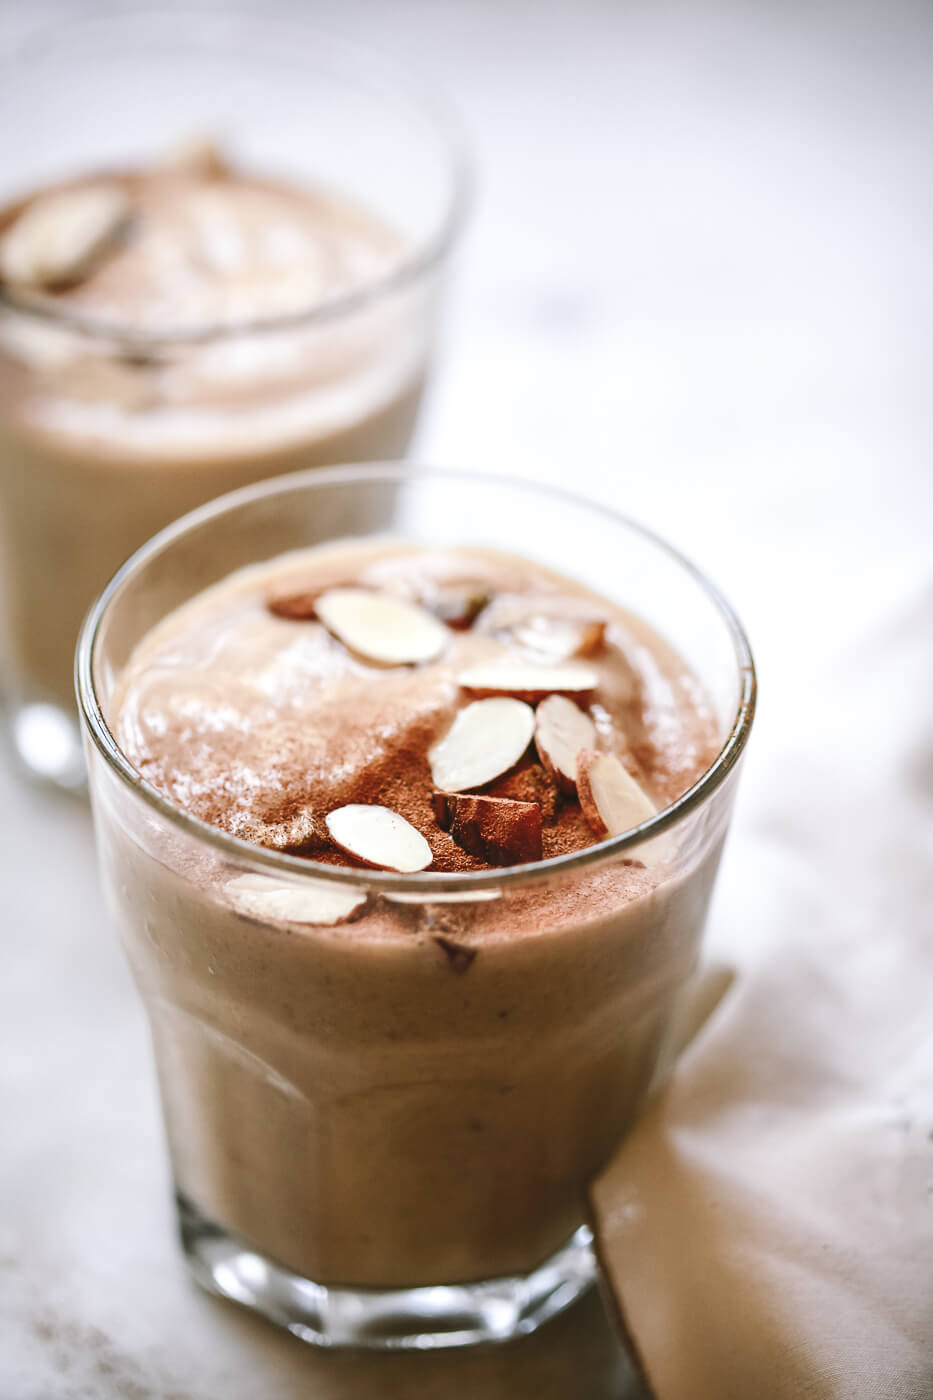 A close-up photo of a homemade healthy date shake in a clear glass. This shake is topped with slivered almonds, chopped Medjool dates, and a dusting of cinnamon.